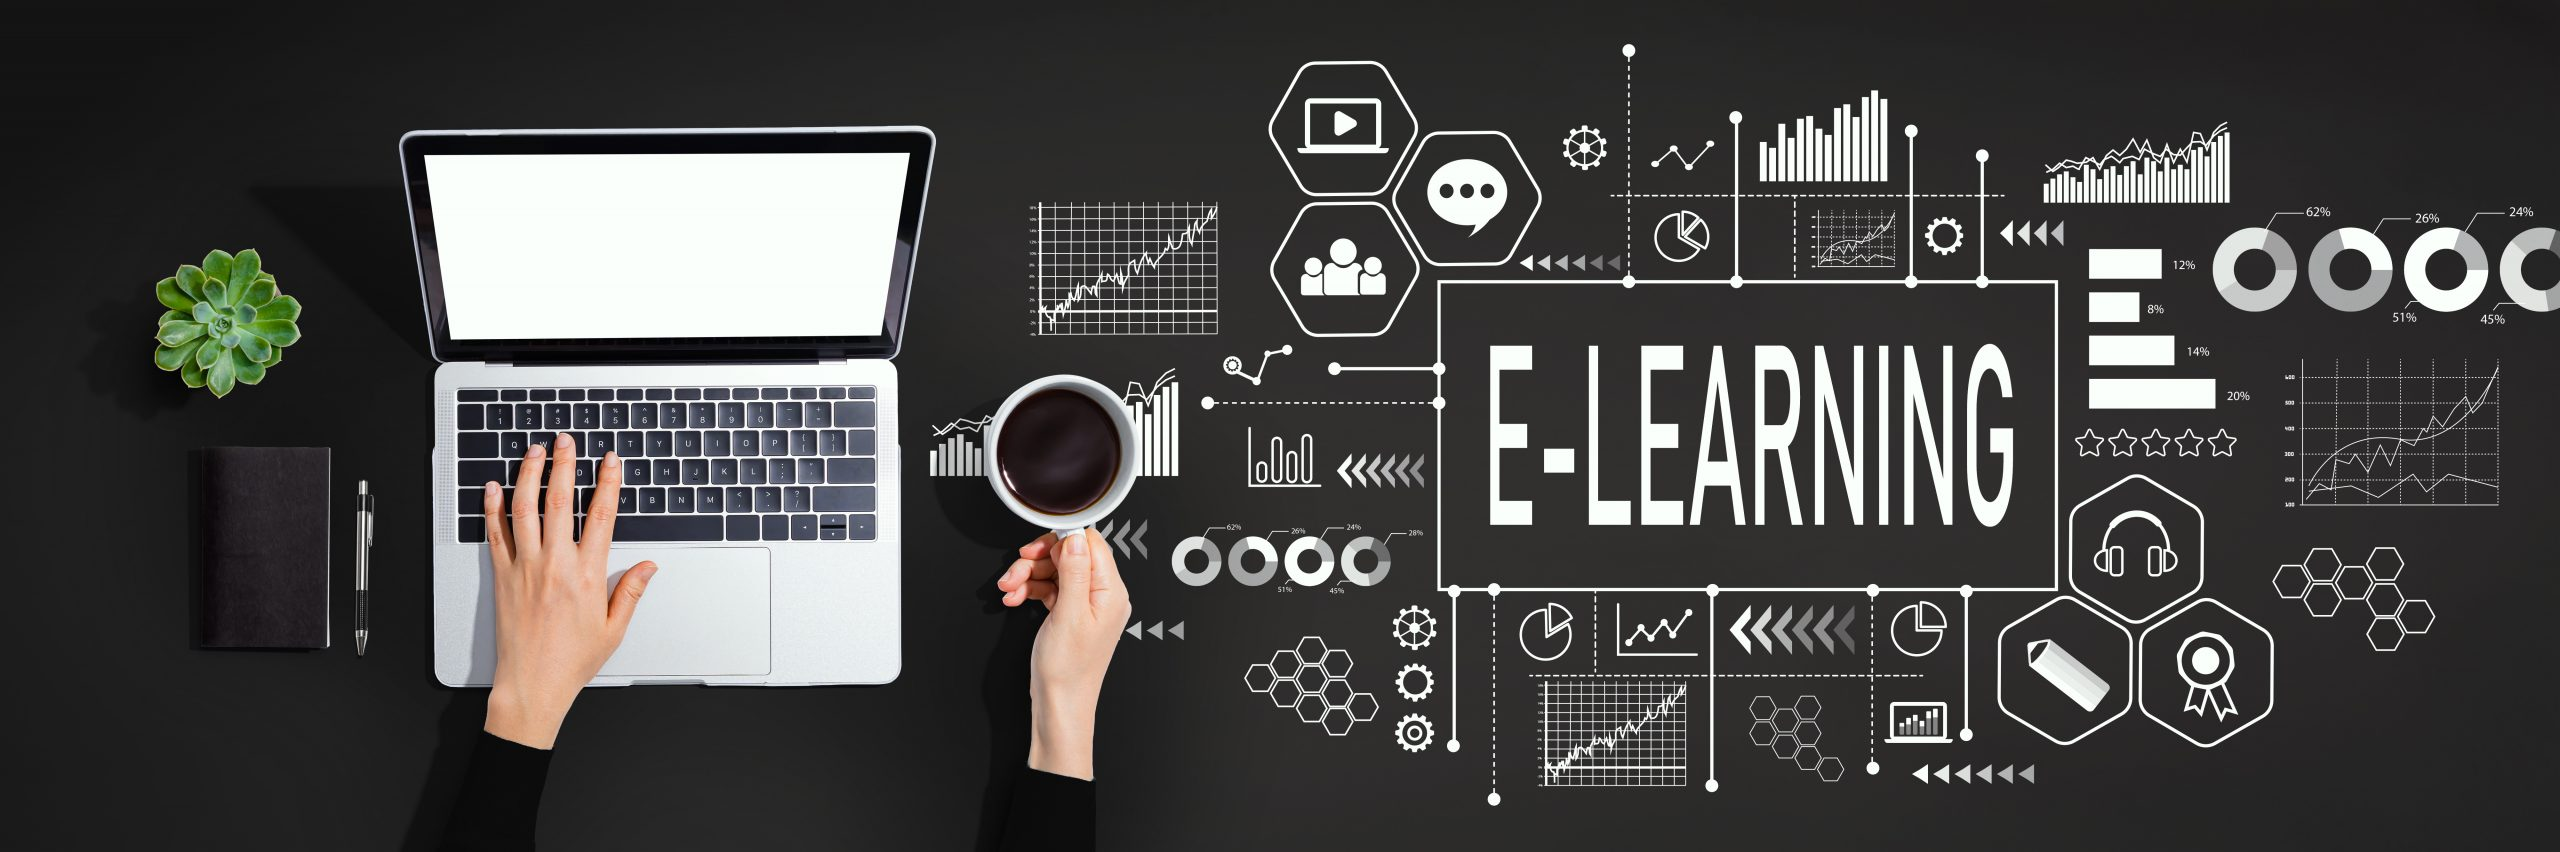 E-Learning Mittelstand drehmoment Blog